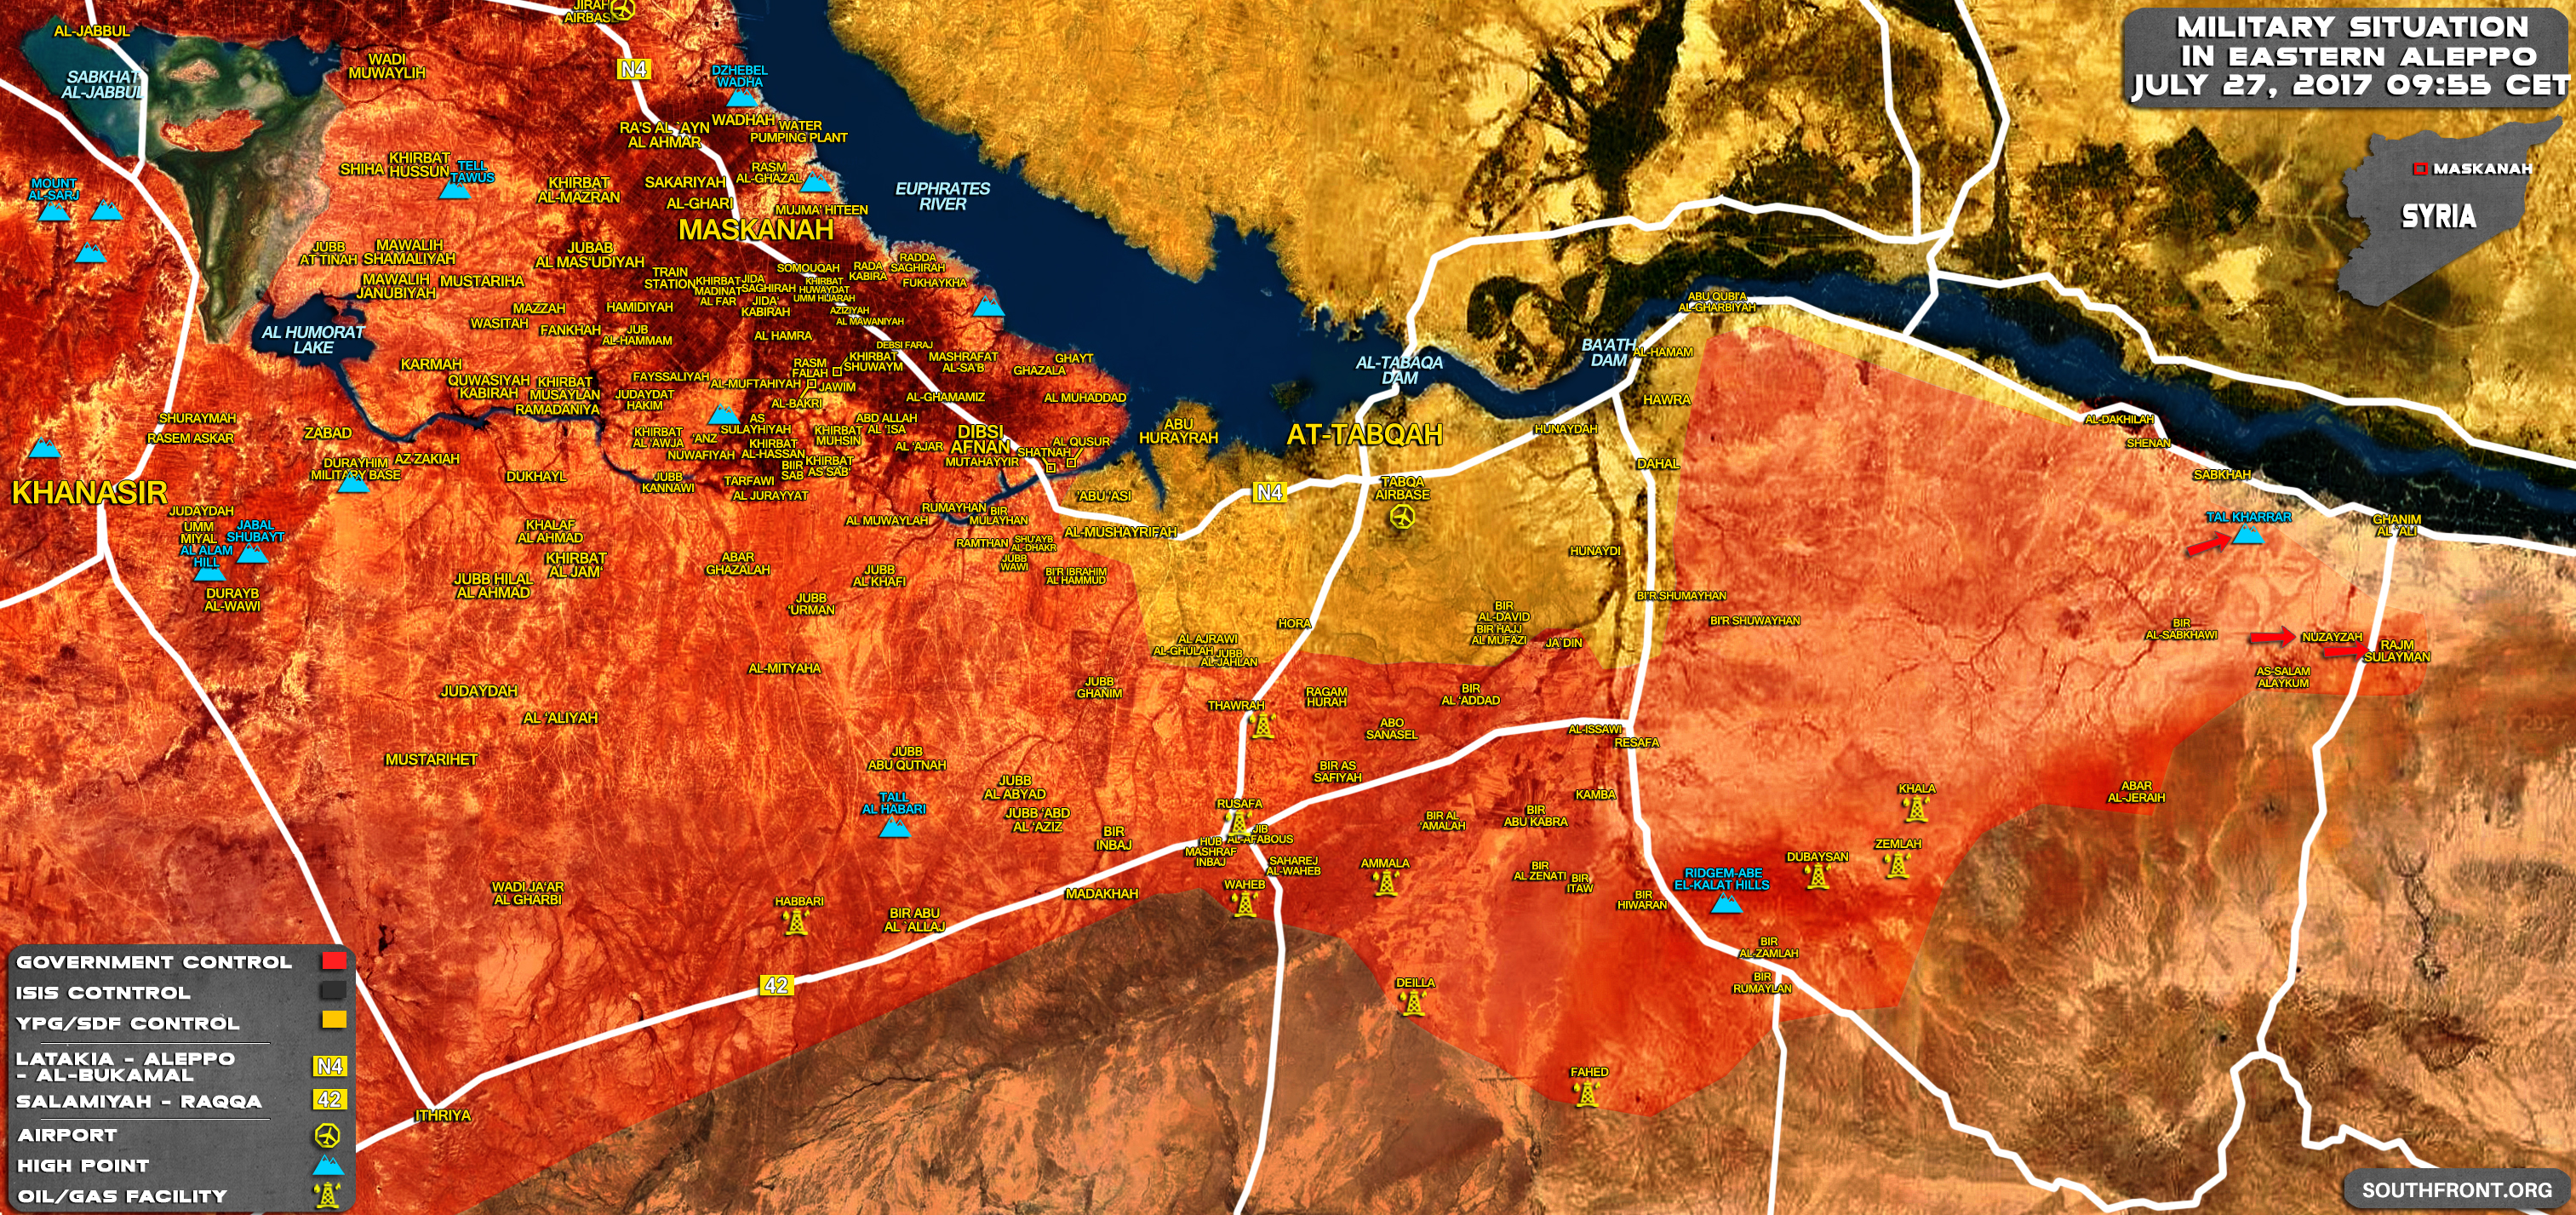 map update military situation in southern raqqah and eastern aleppo after recent tiger forces advances